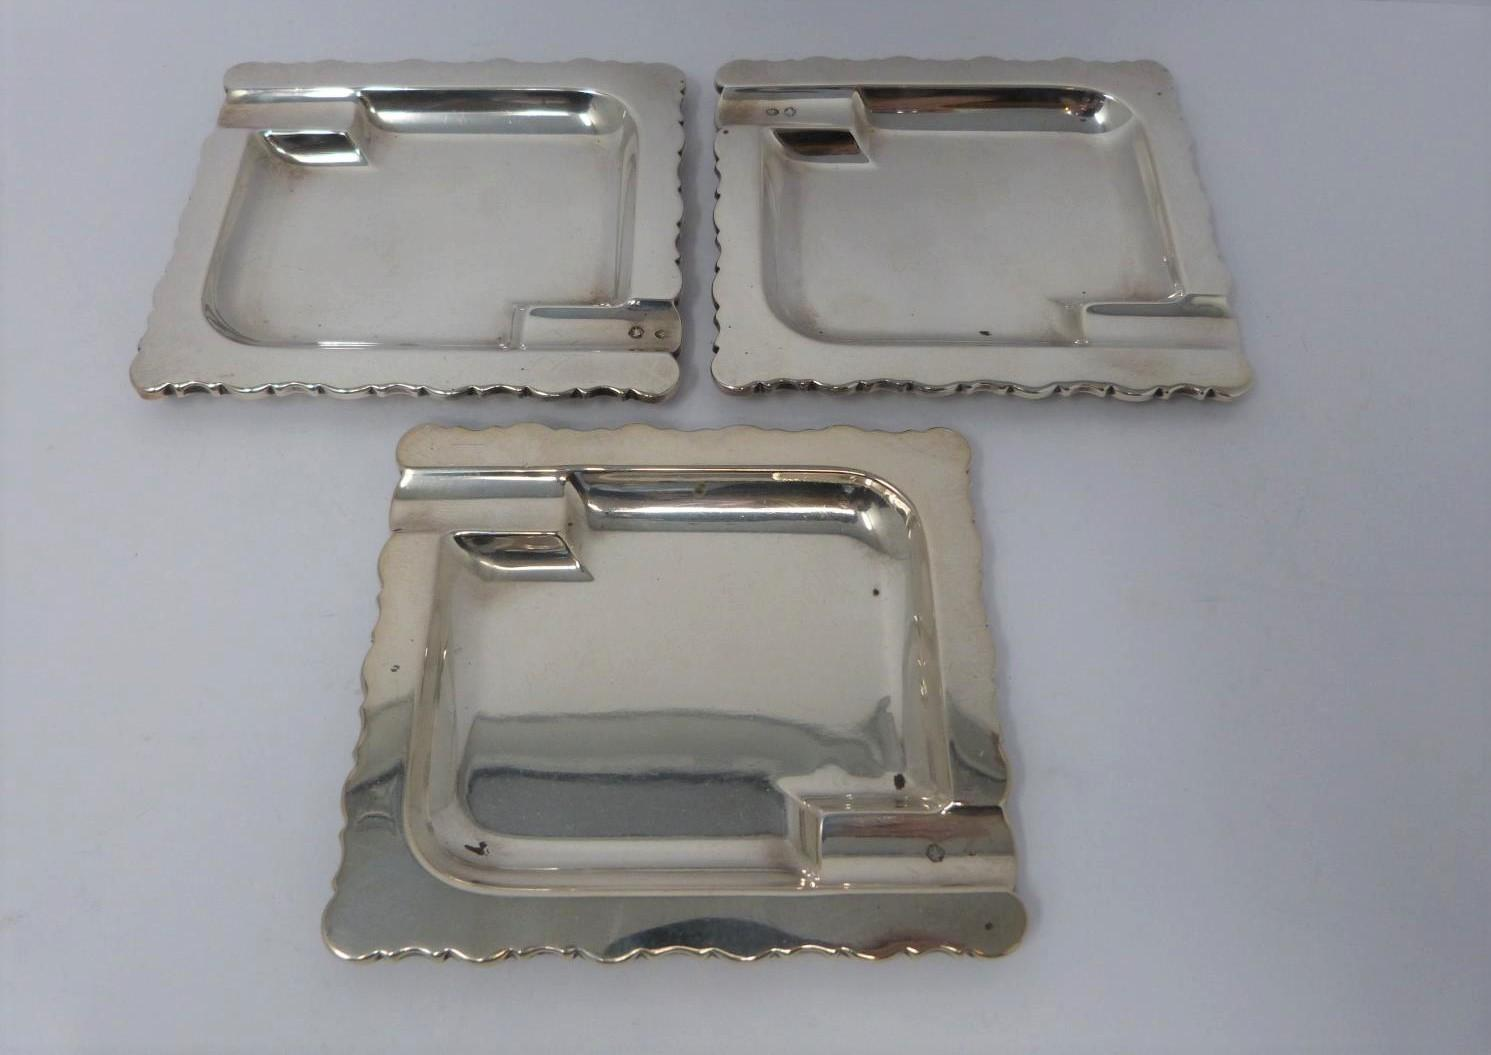 Three silver ash trays, a silver lidded box, silver salt and silver plated floral dishes, box: - Image 3 of 7